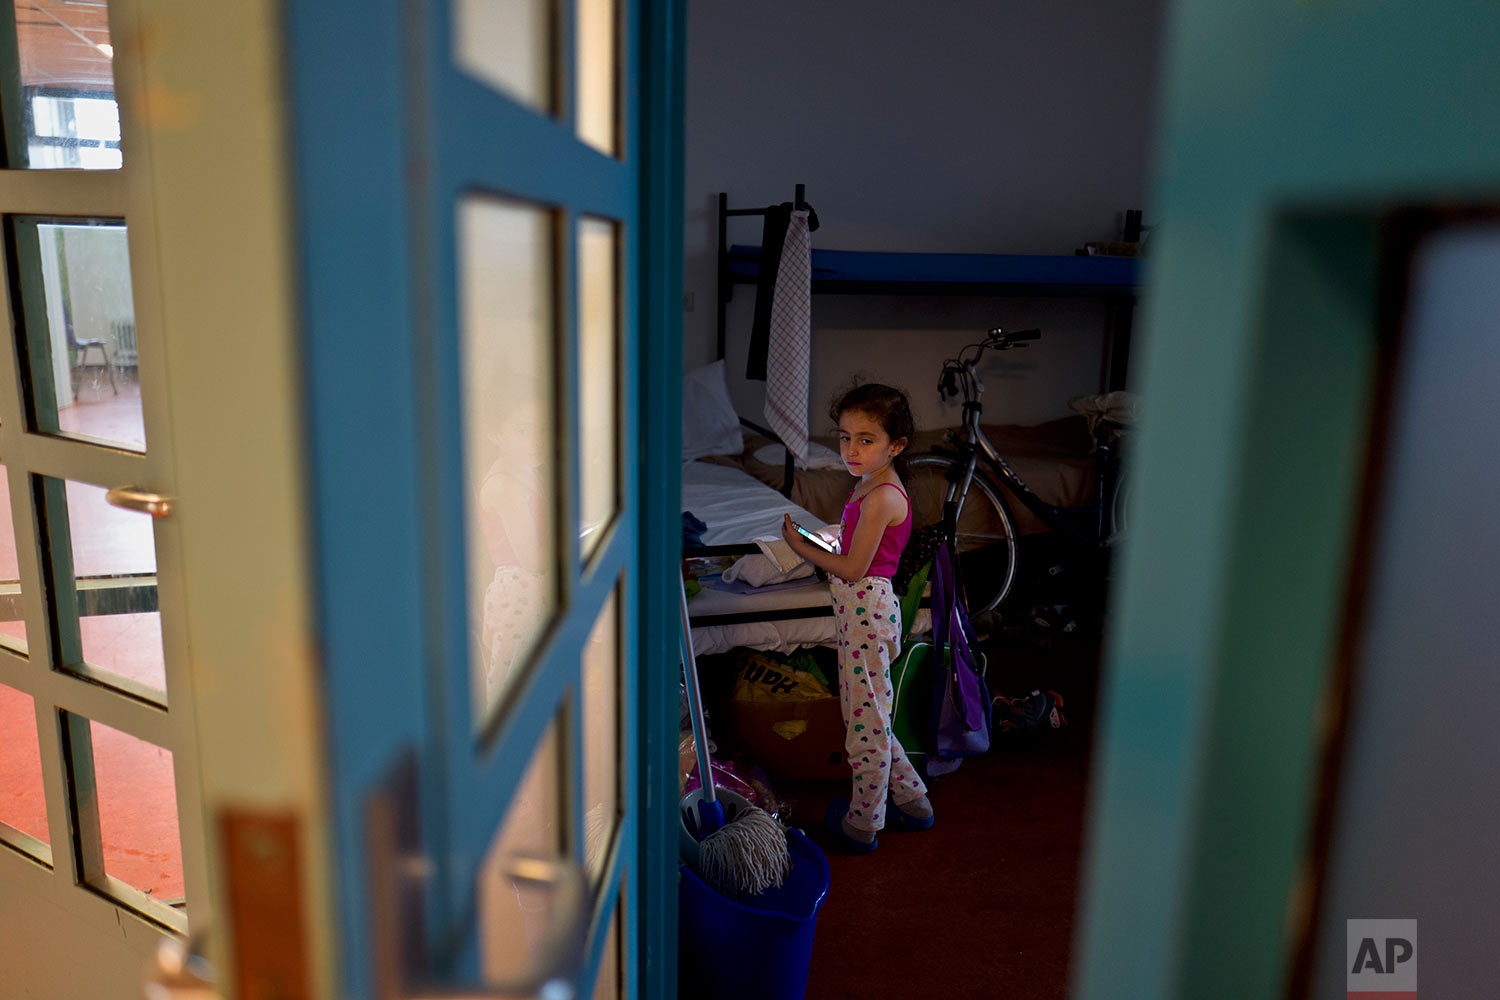 In this Friday, June 30, 2017 photo, refugee Sandi Yazji, 5, from al-Hasaka, Syria, holds a mobile phone while standing inside her room at the former prison of Bijlmerbajes in Amsterdam, Netherlands. (AP Photo/Muhammed Muheisen)